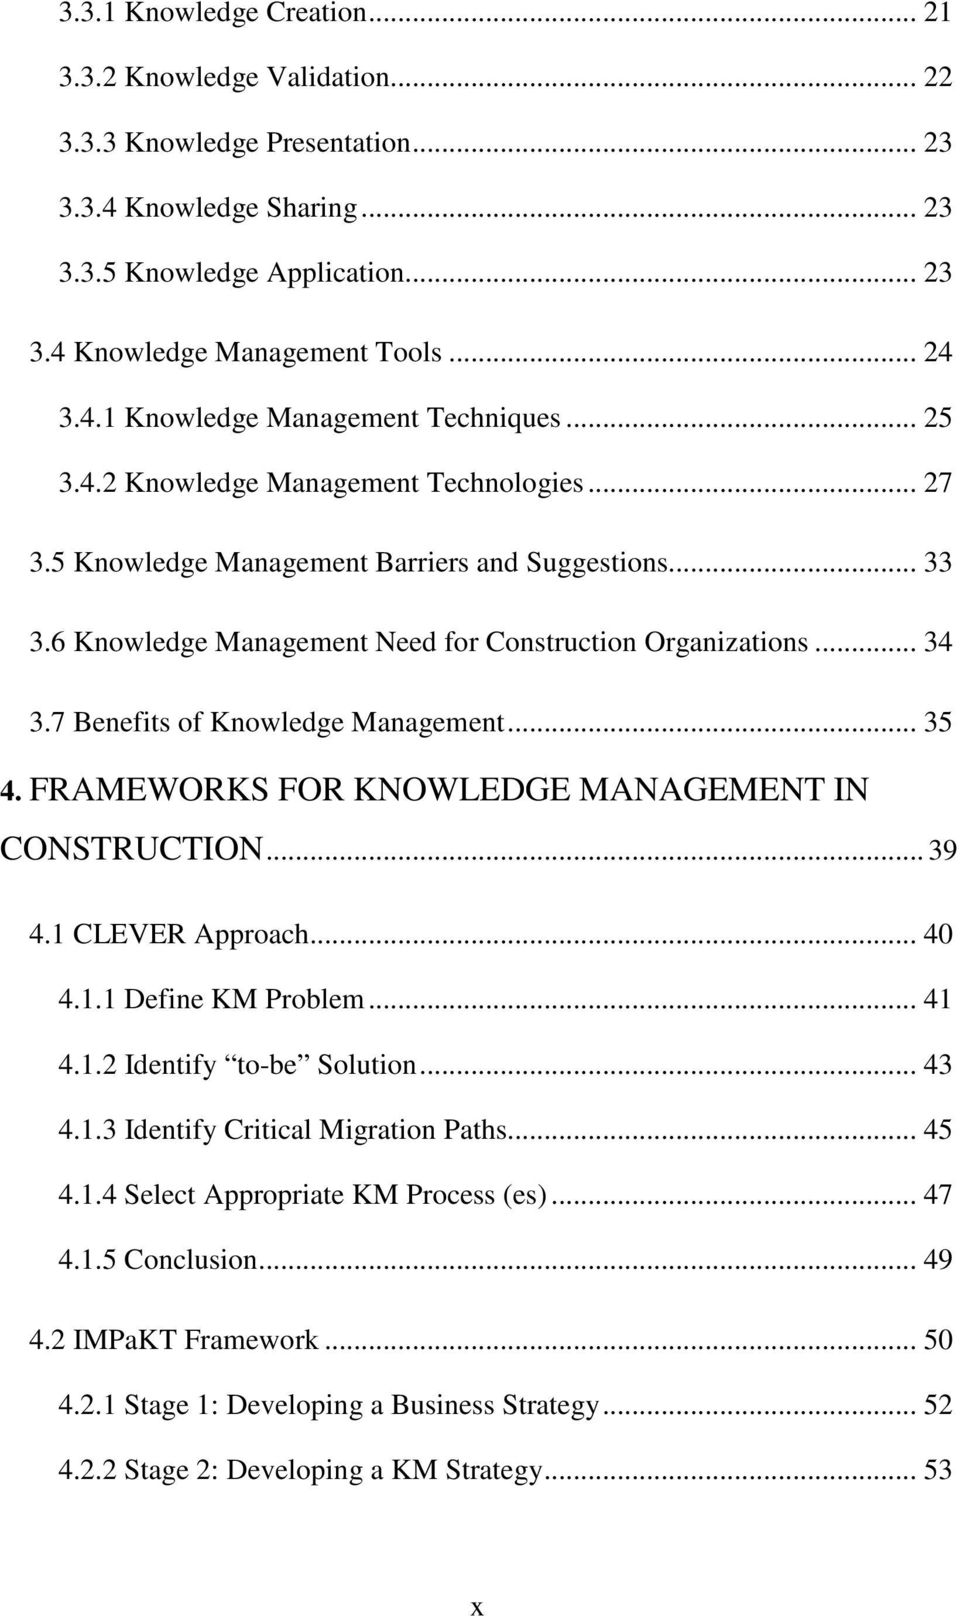 6 Knowledge Management Need for Construction Organizations... 34 3.7 Benefits of Knowledge Management... 35 4. FRAMEWORKS FOR KNOWLEDGE MANAGEMENT IN CONSTRUCTION... 39 4.1 CLEVER Approach... 40 4.1.1 Define KM Problem.